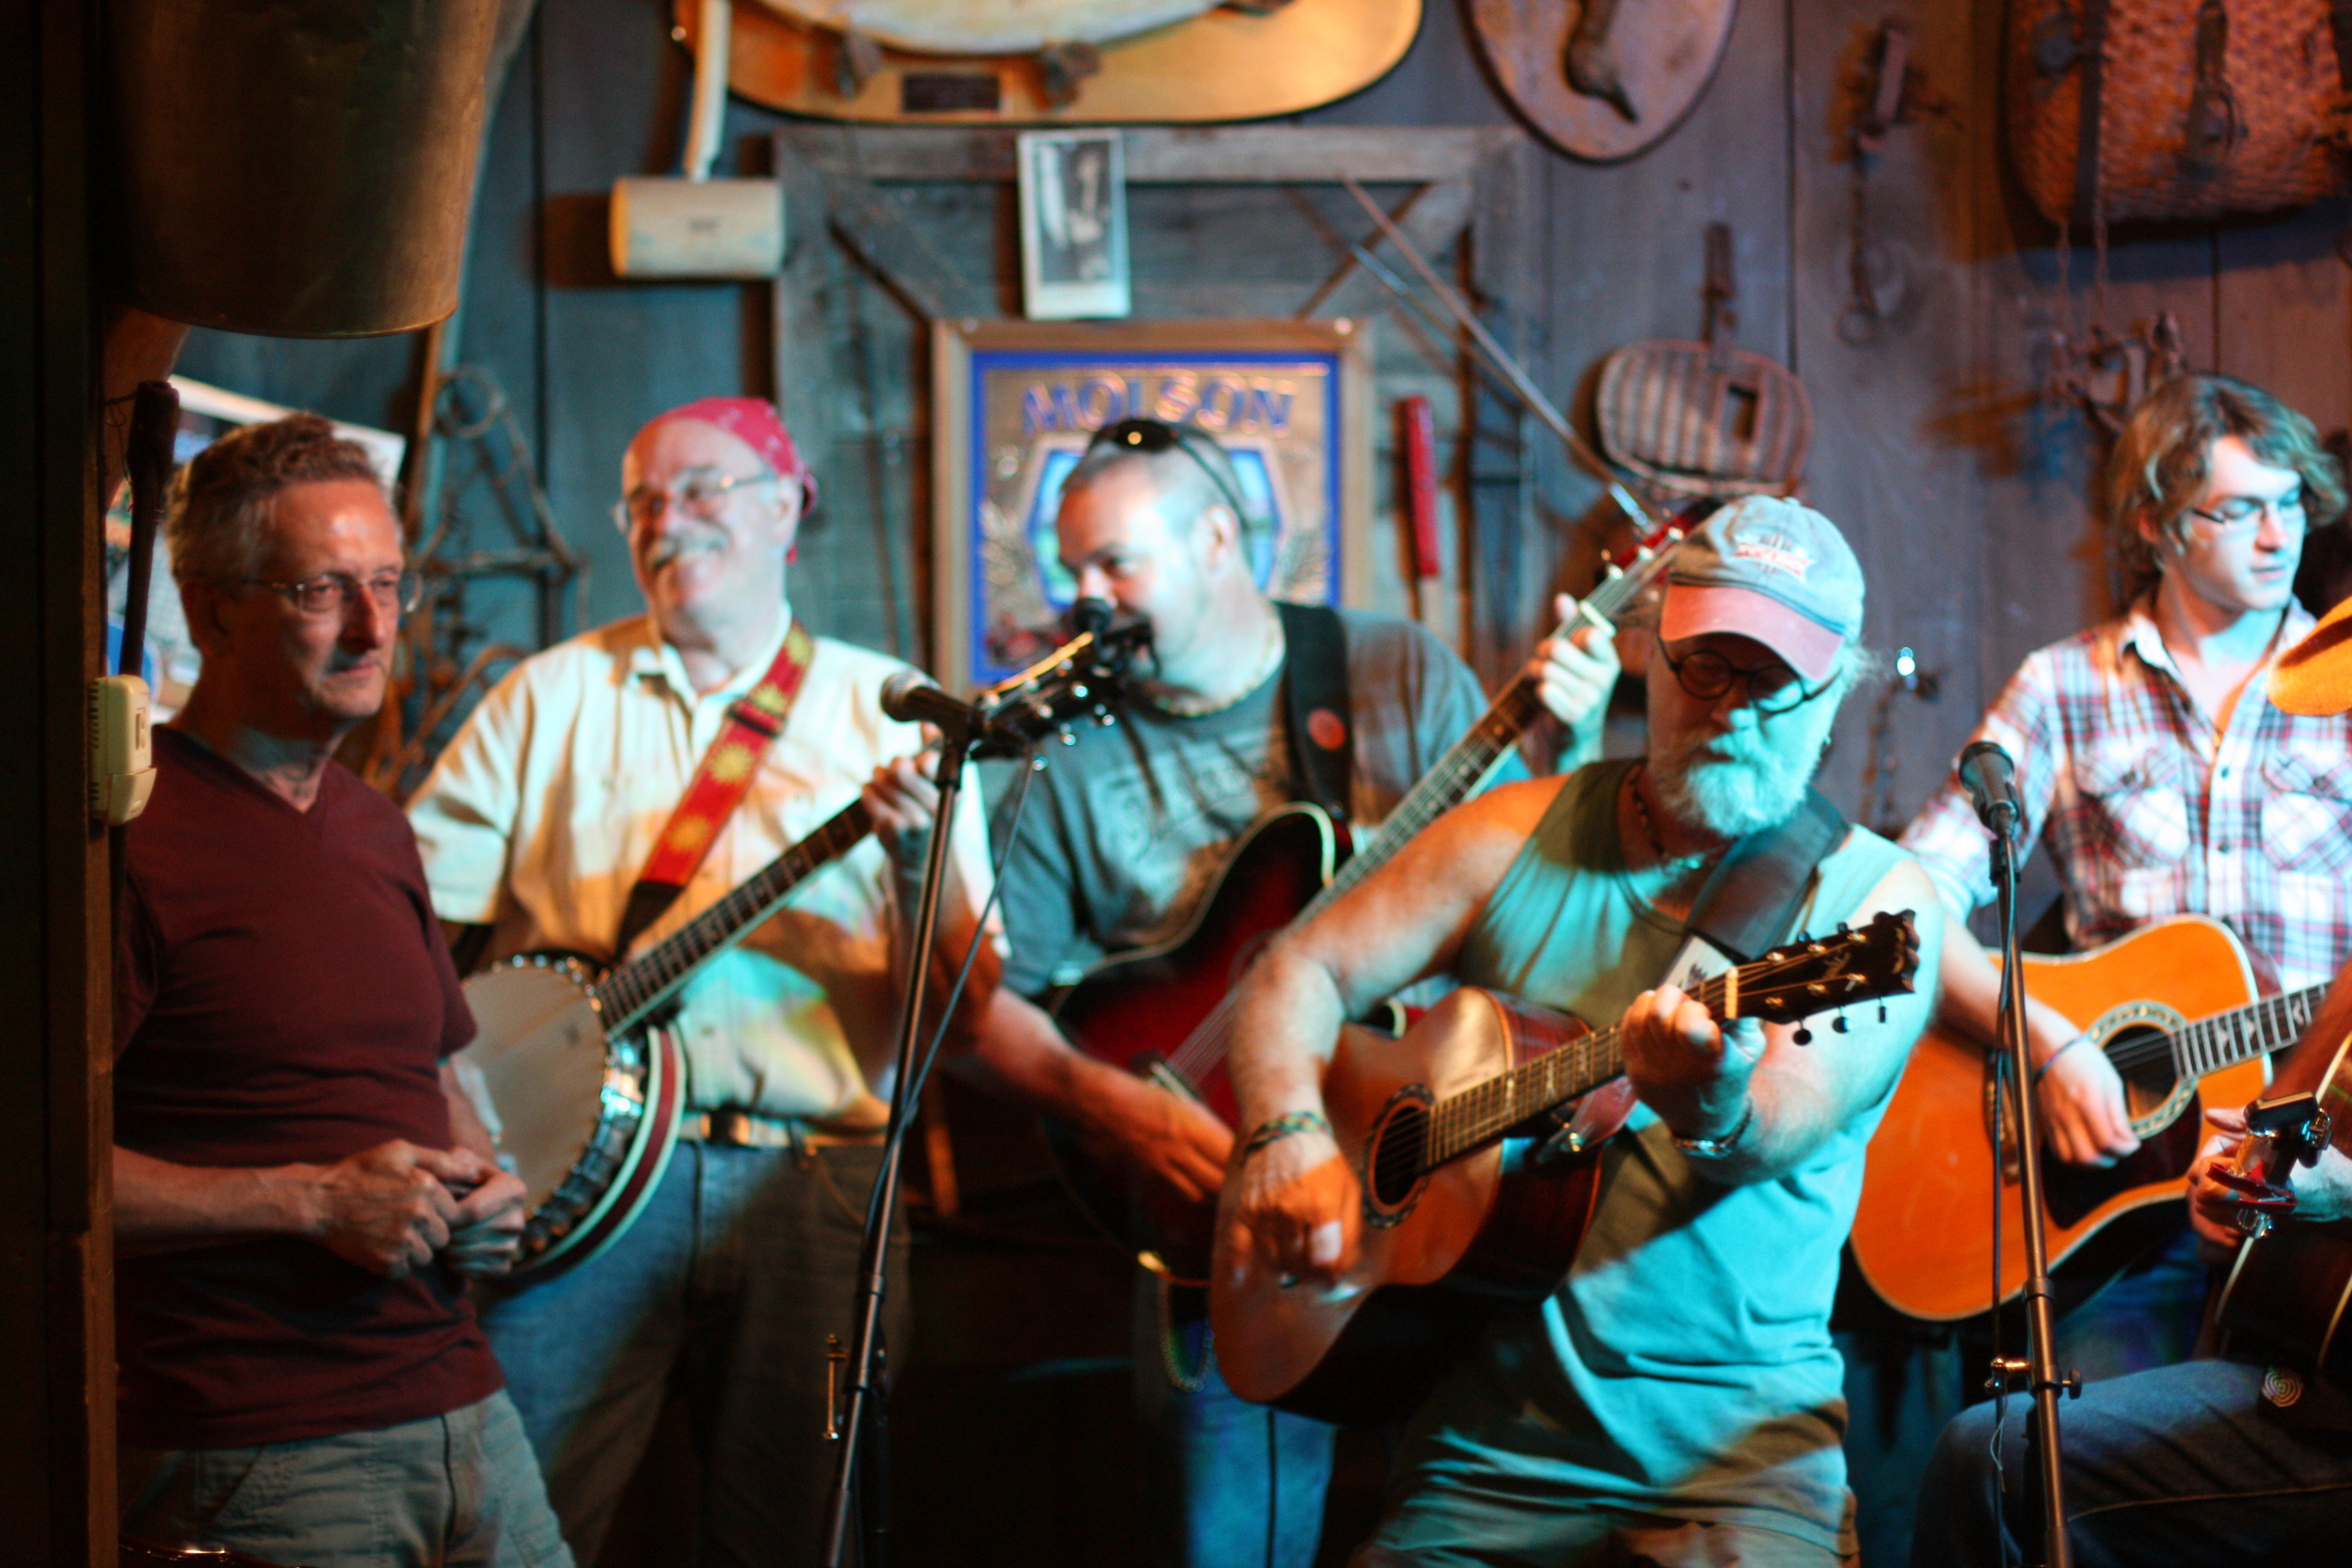 Thursday: Open Mic Night at Witherbees Carriage House. Sign up at 6:30 pm with Mark Piper. Free!